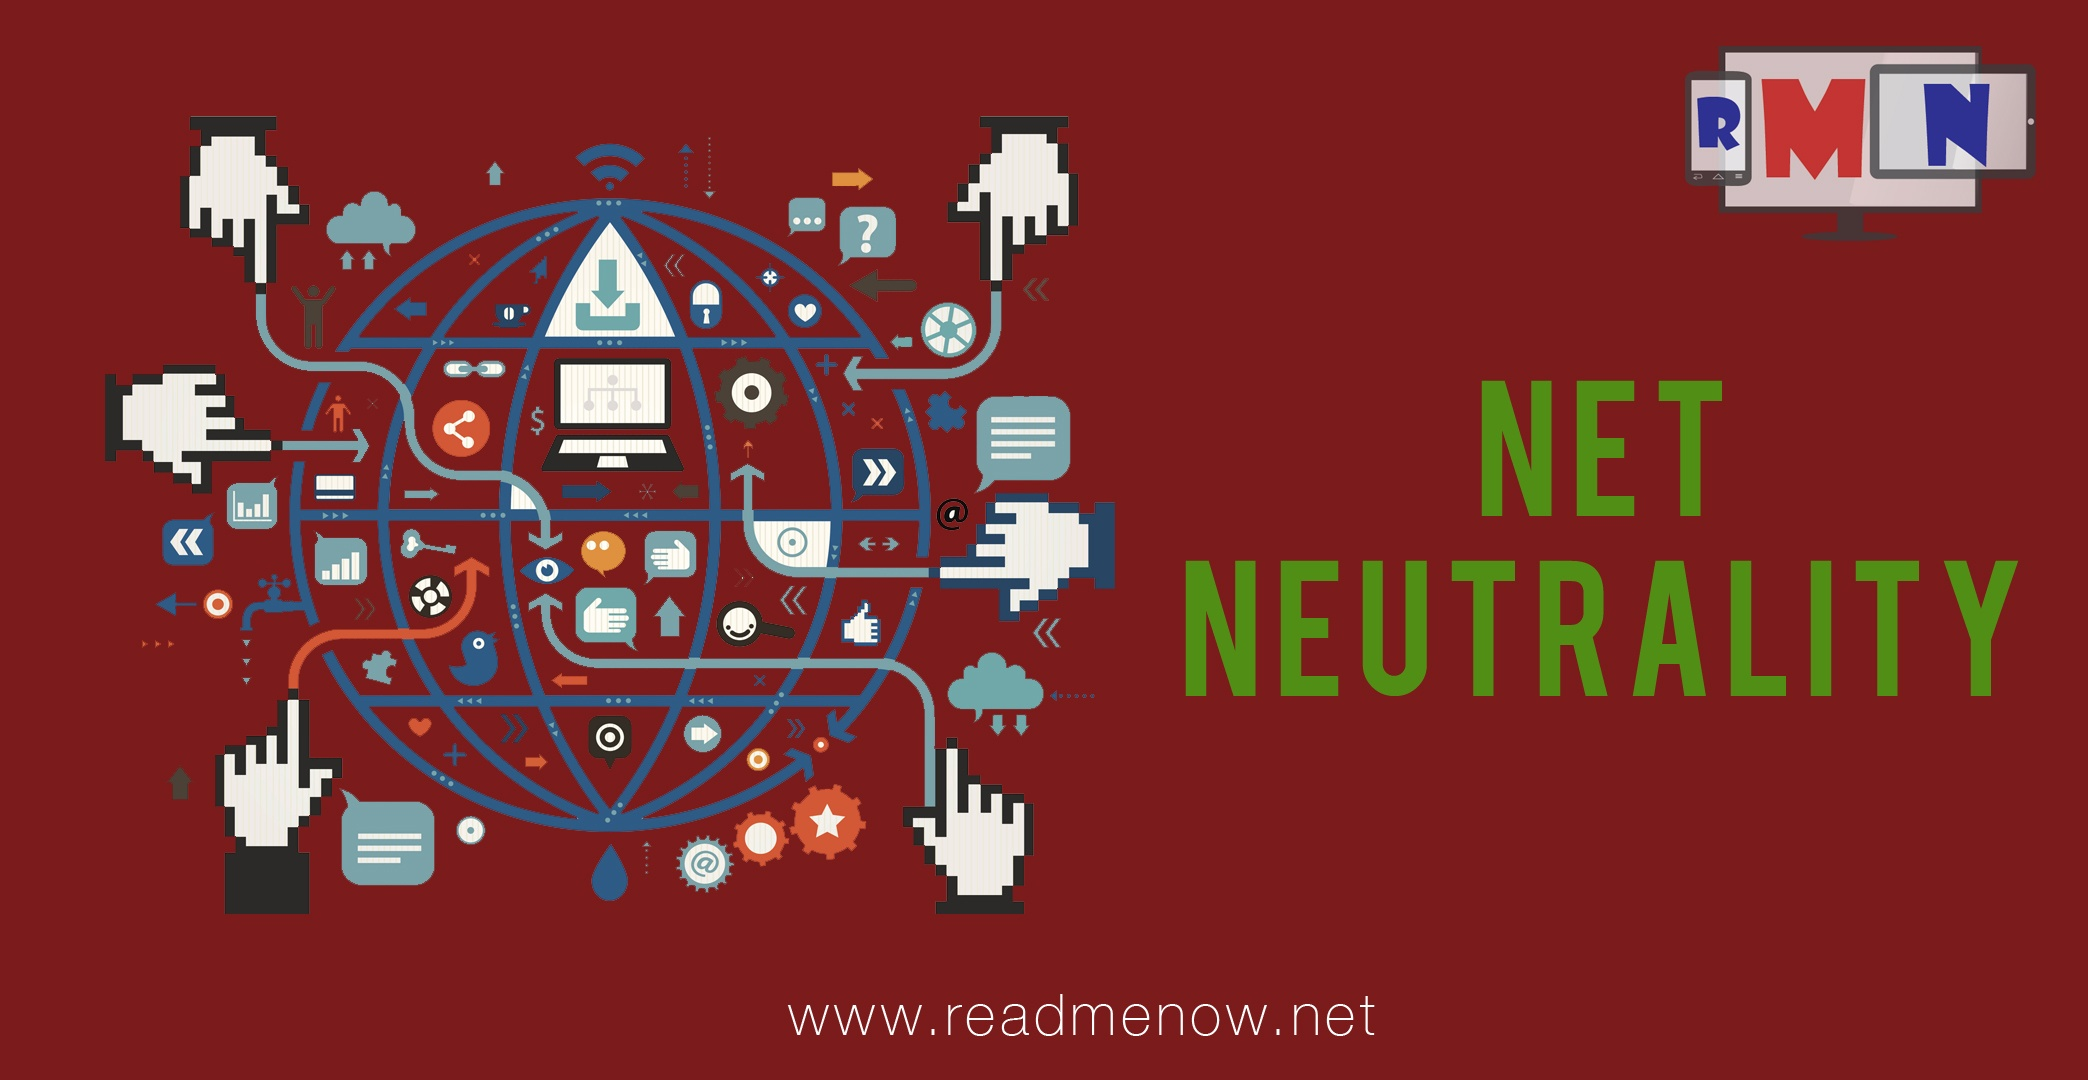 Save The Internet: Net Neutrality